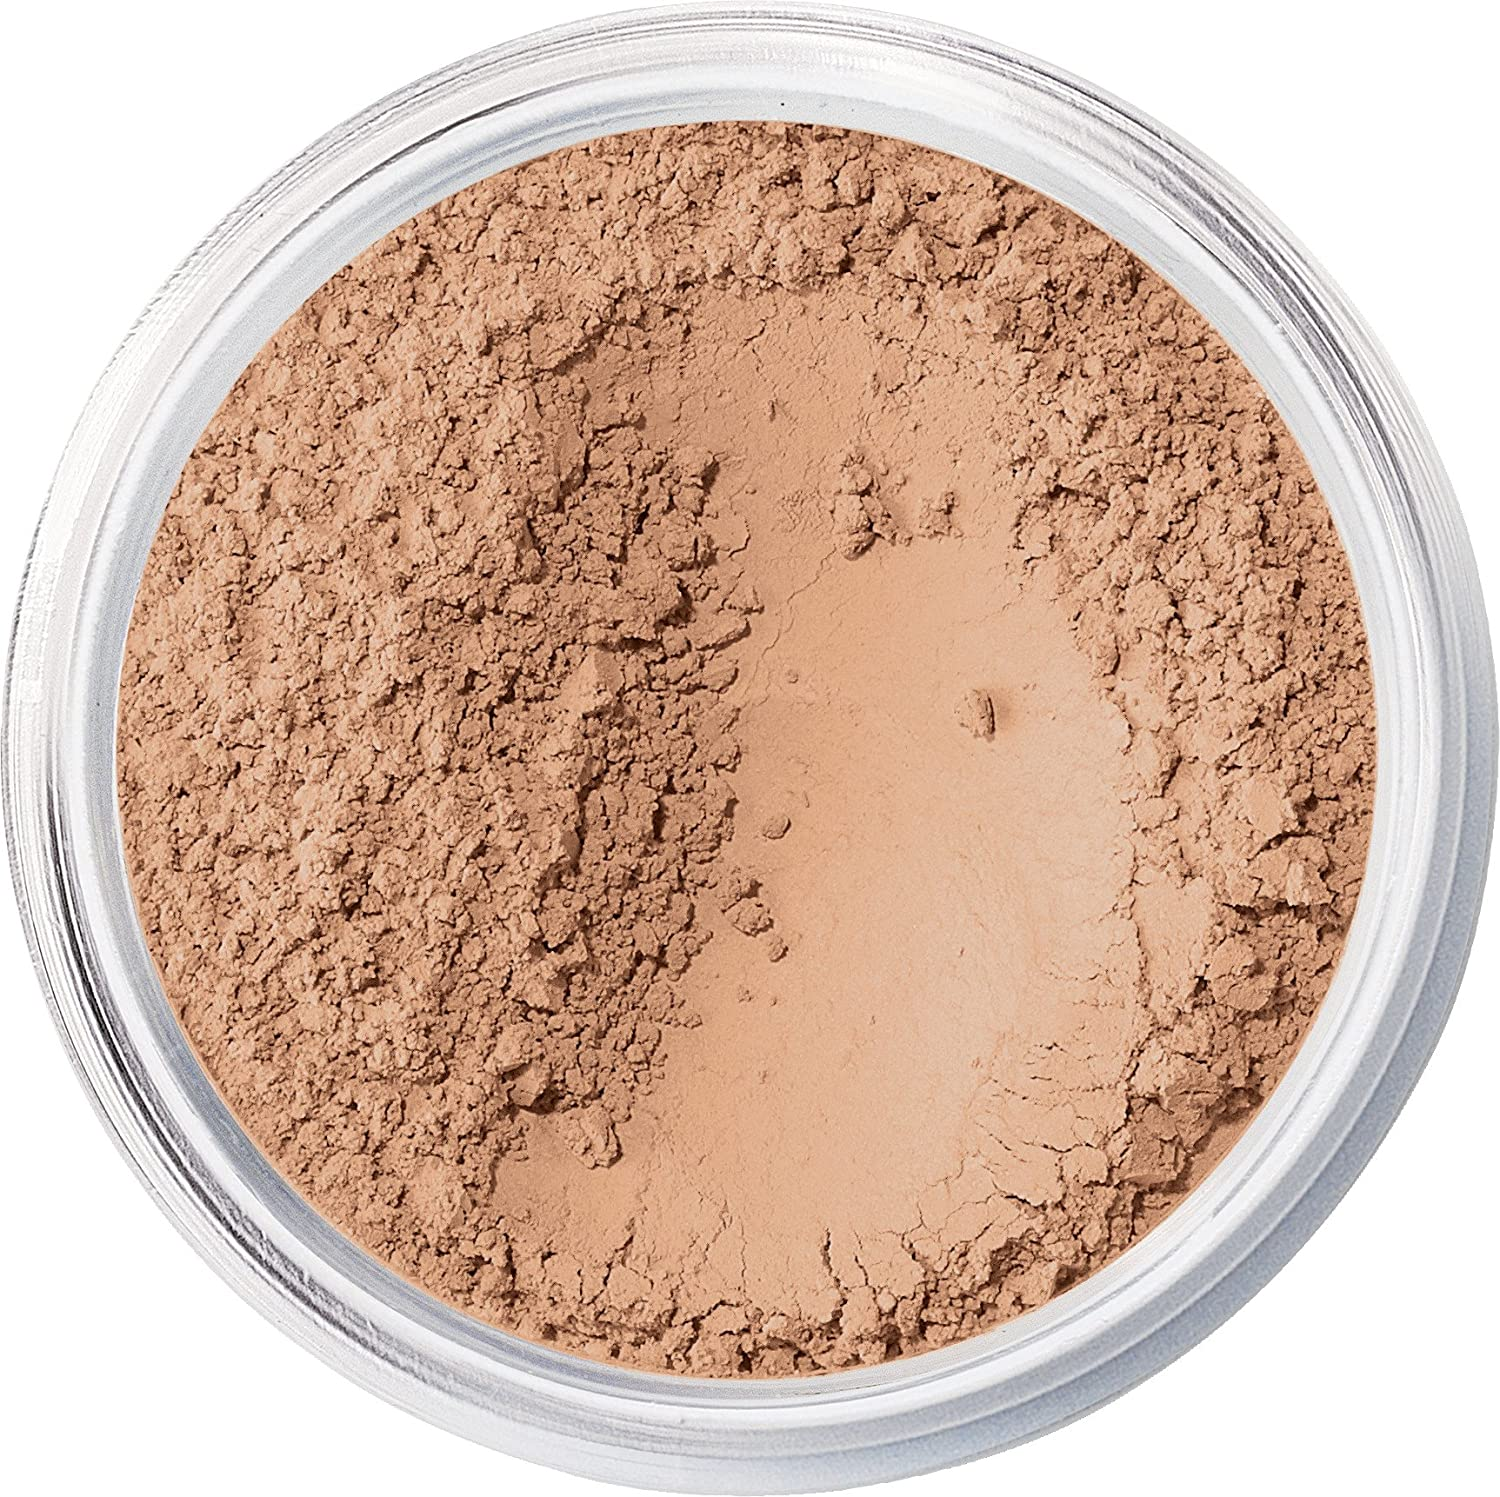 bareMinerals-ORIGINAL-Foundation-Click-Sifter